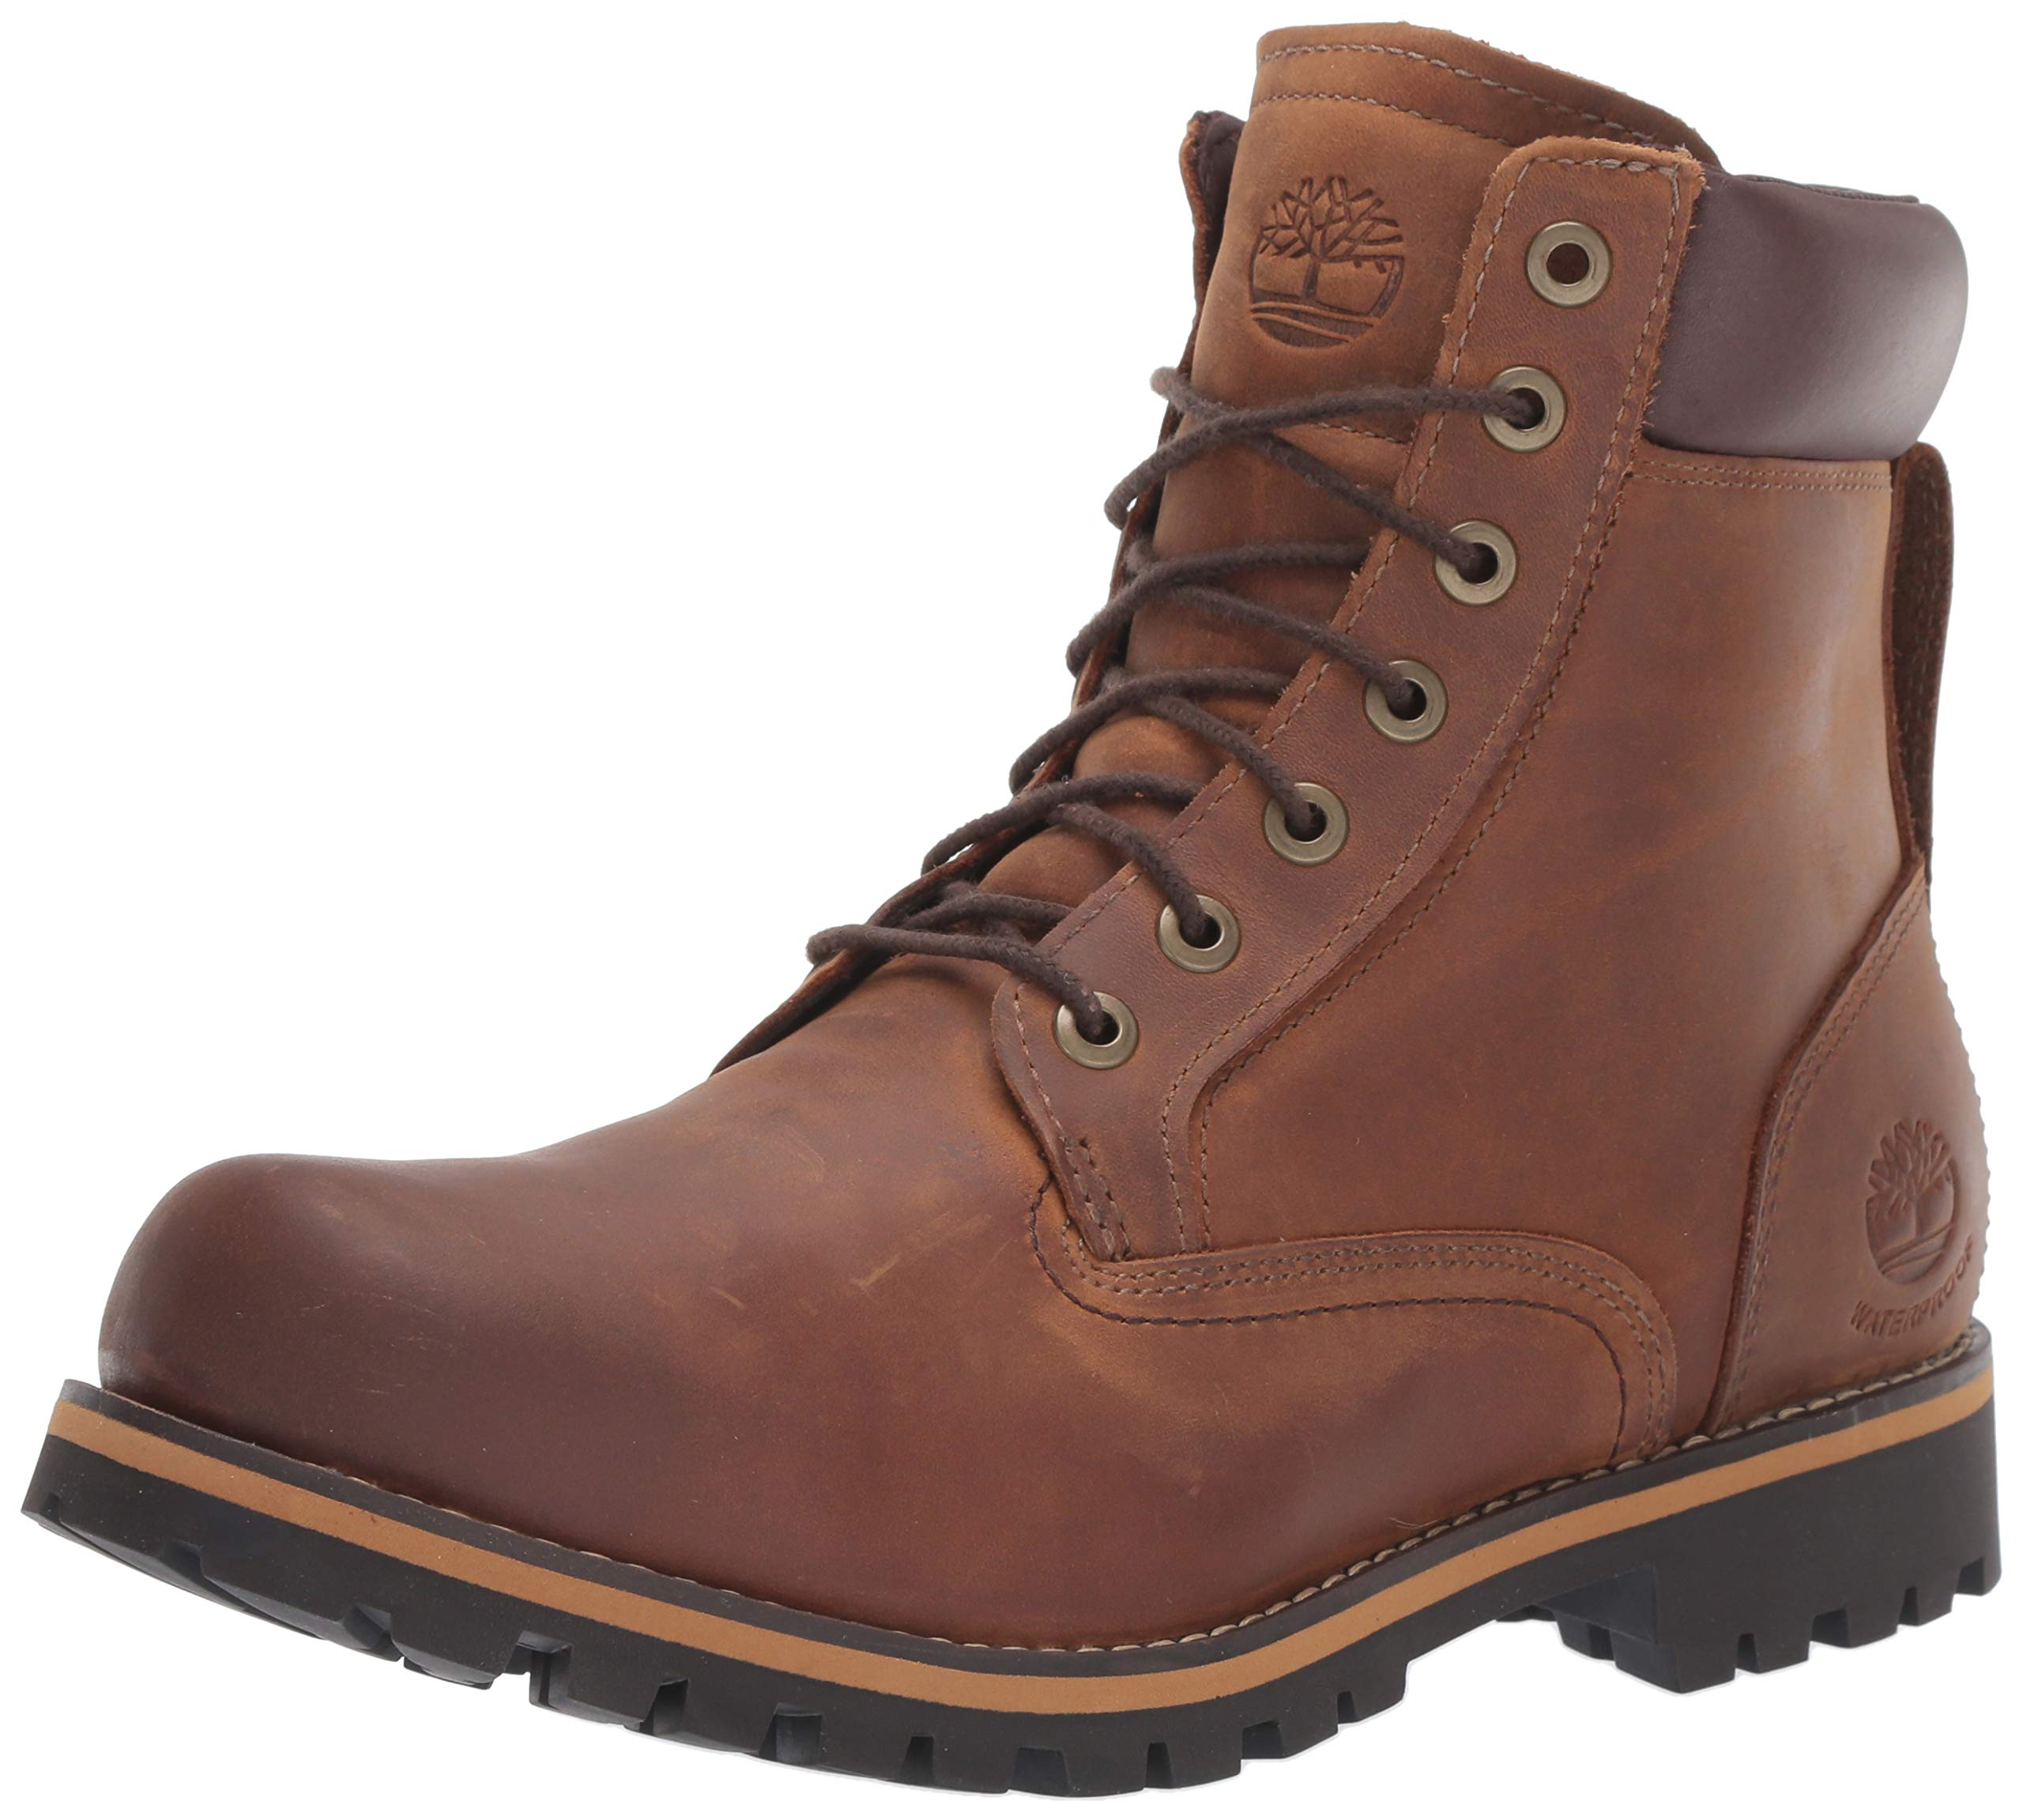 Timberland Men's Earthkeepers Rugged Boot, Medium brown full grain, 7.5 M US by Timberland